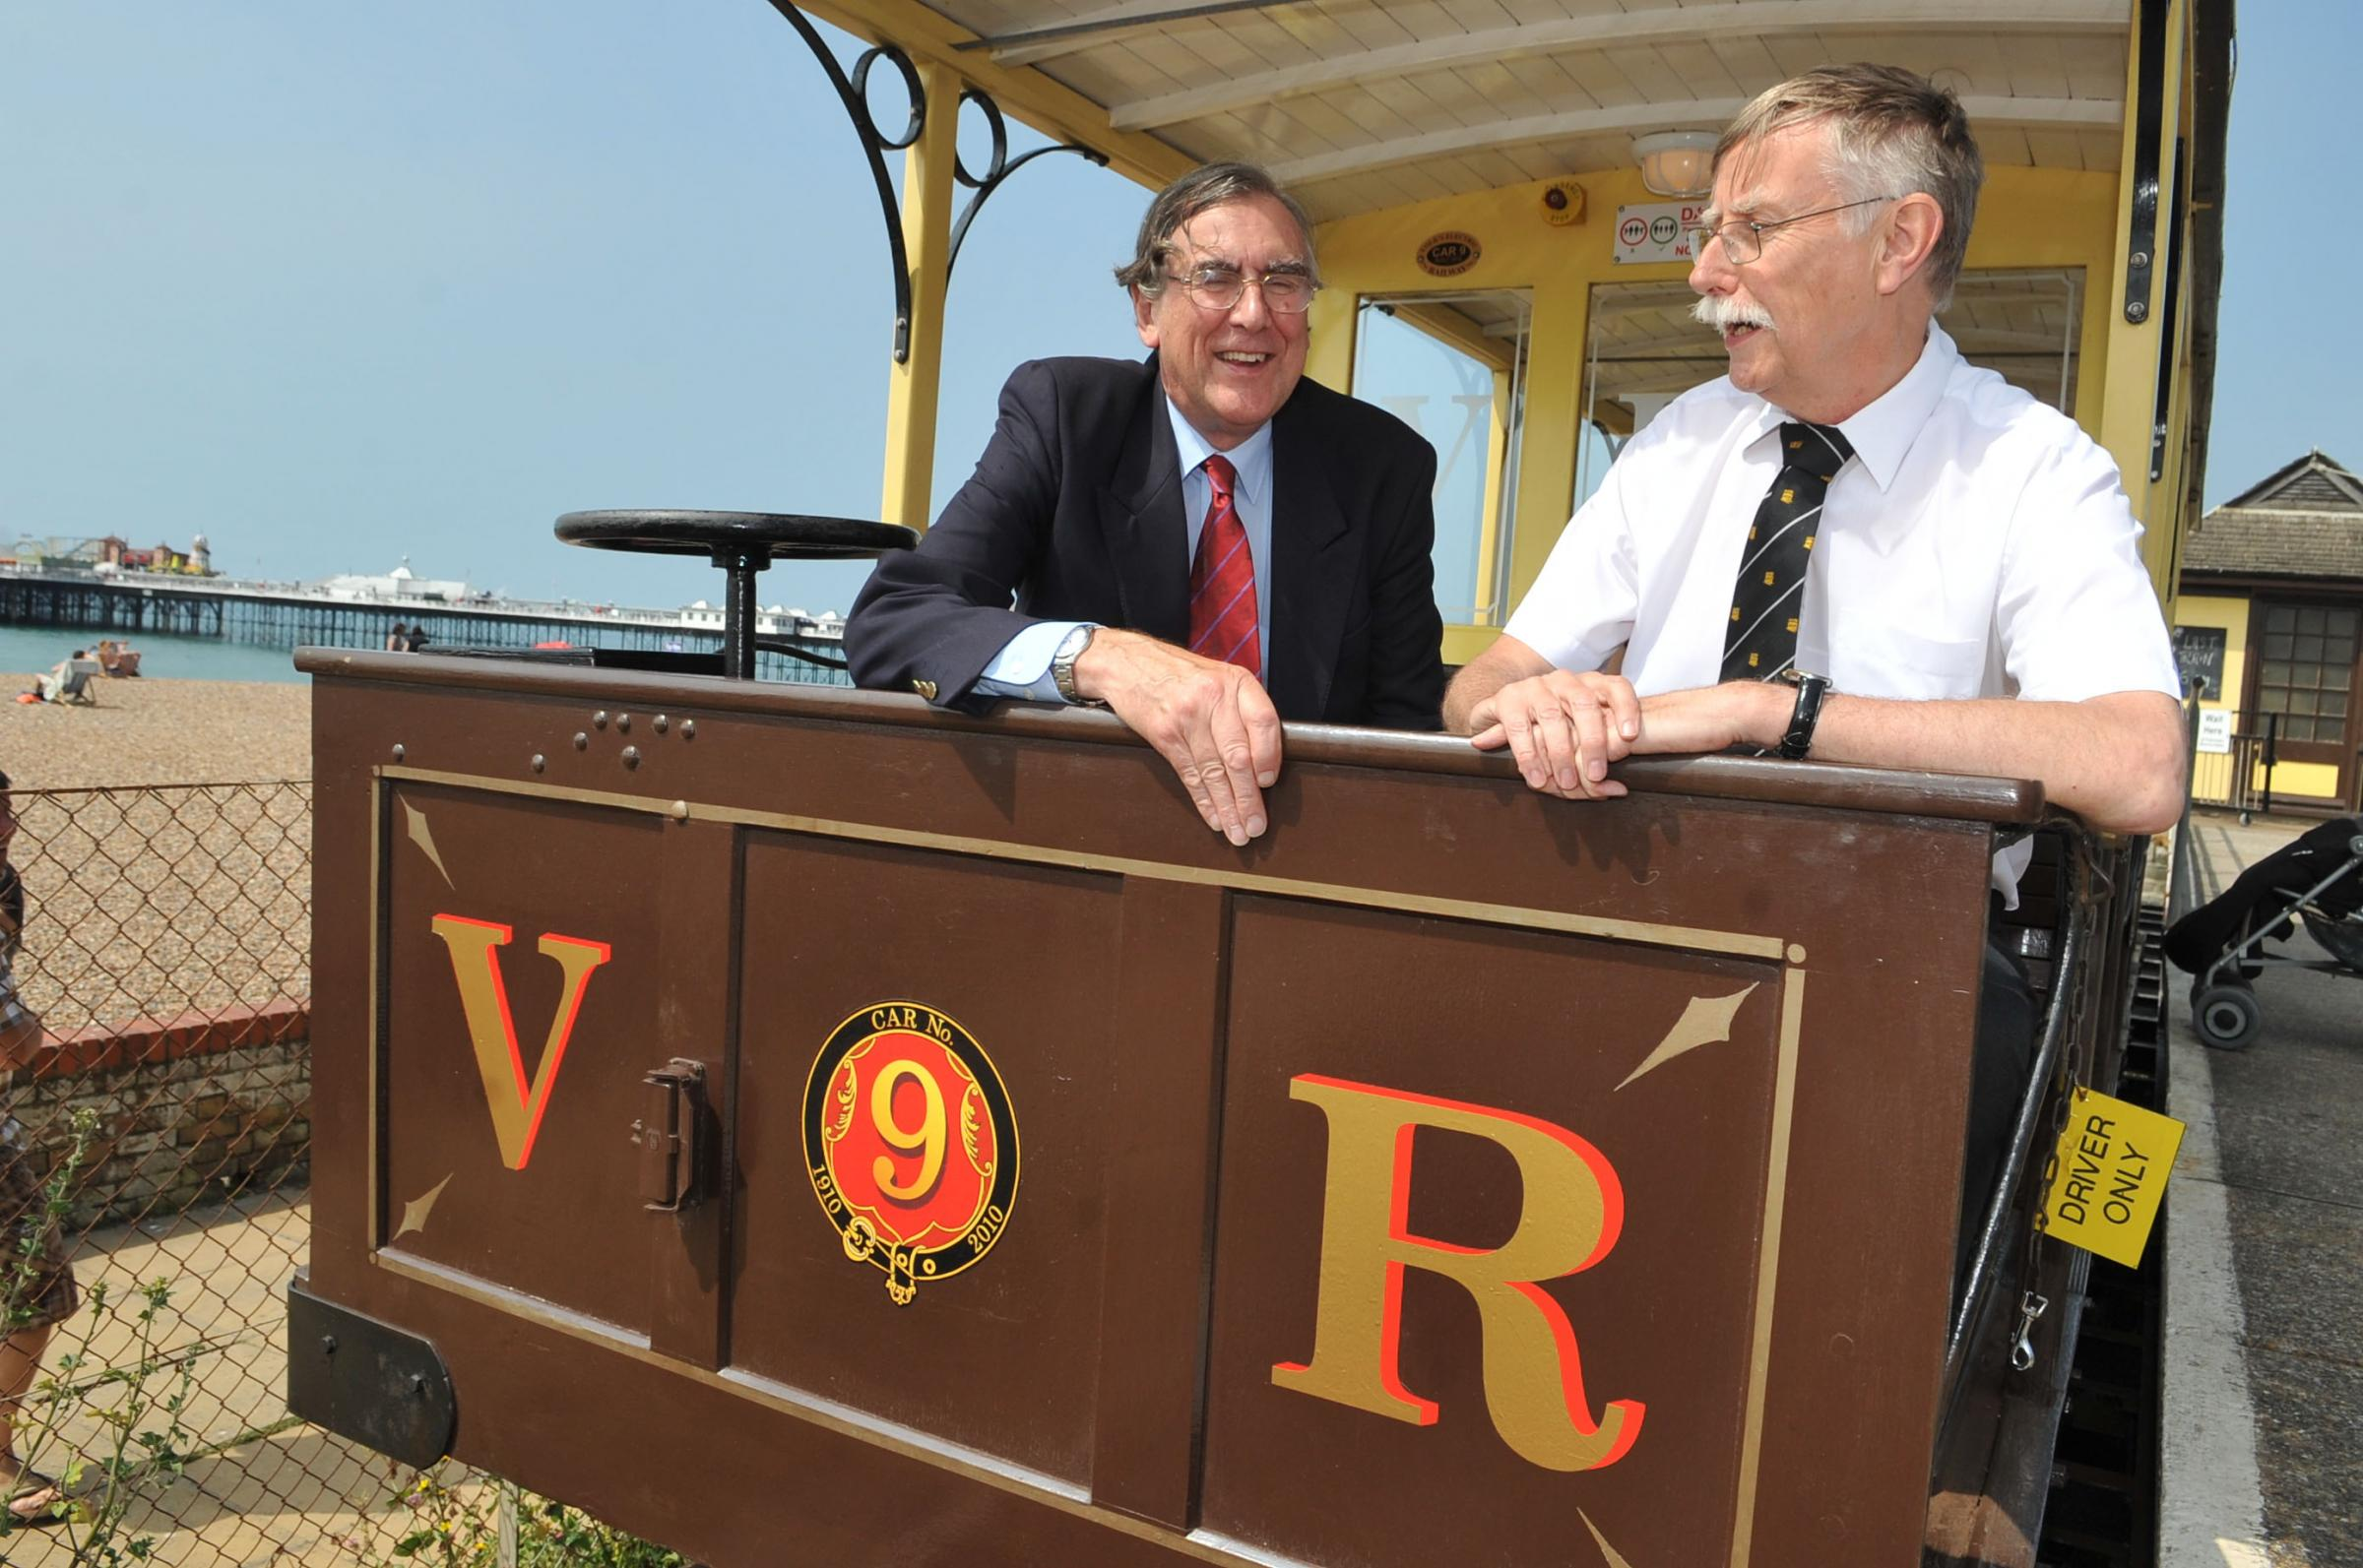 Volks Electric Railway on Brighton seafront wins mechanical engineering award